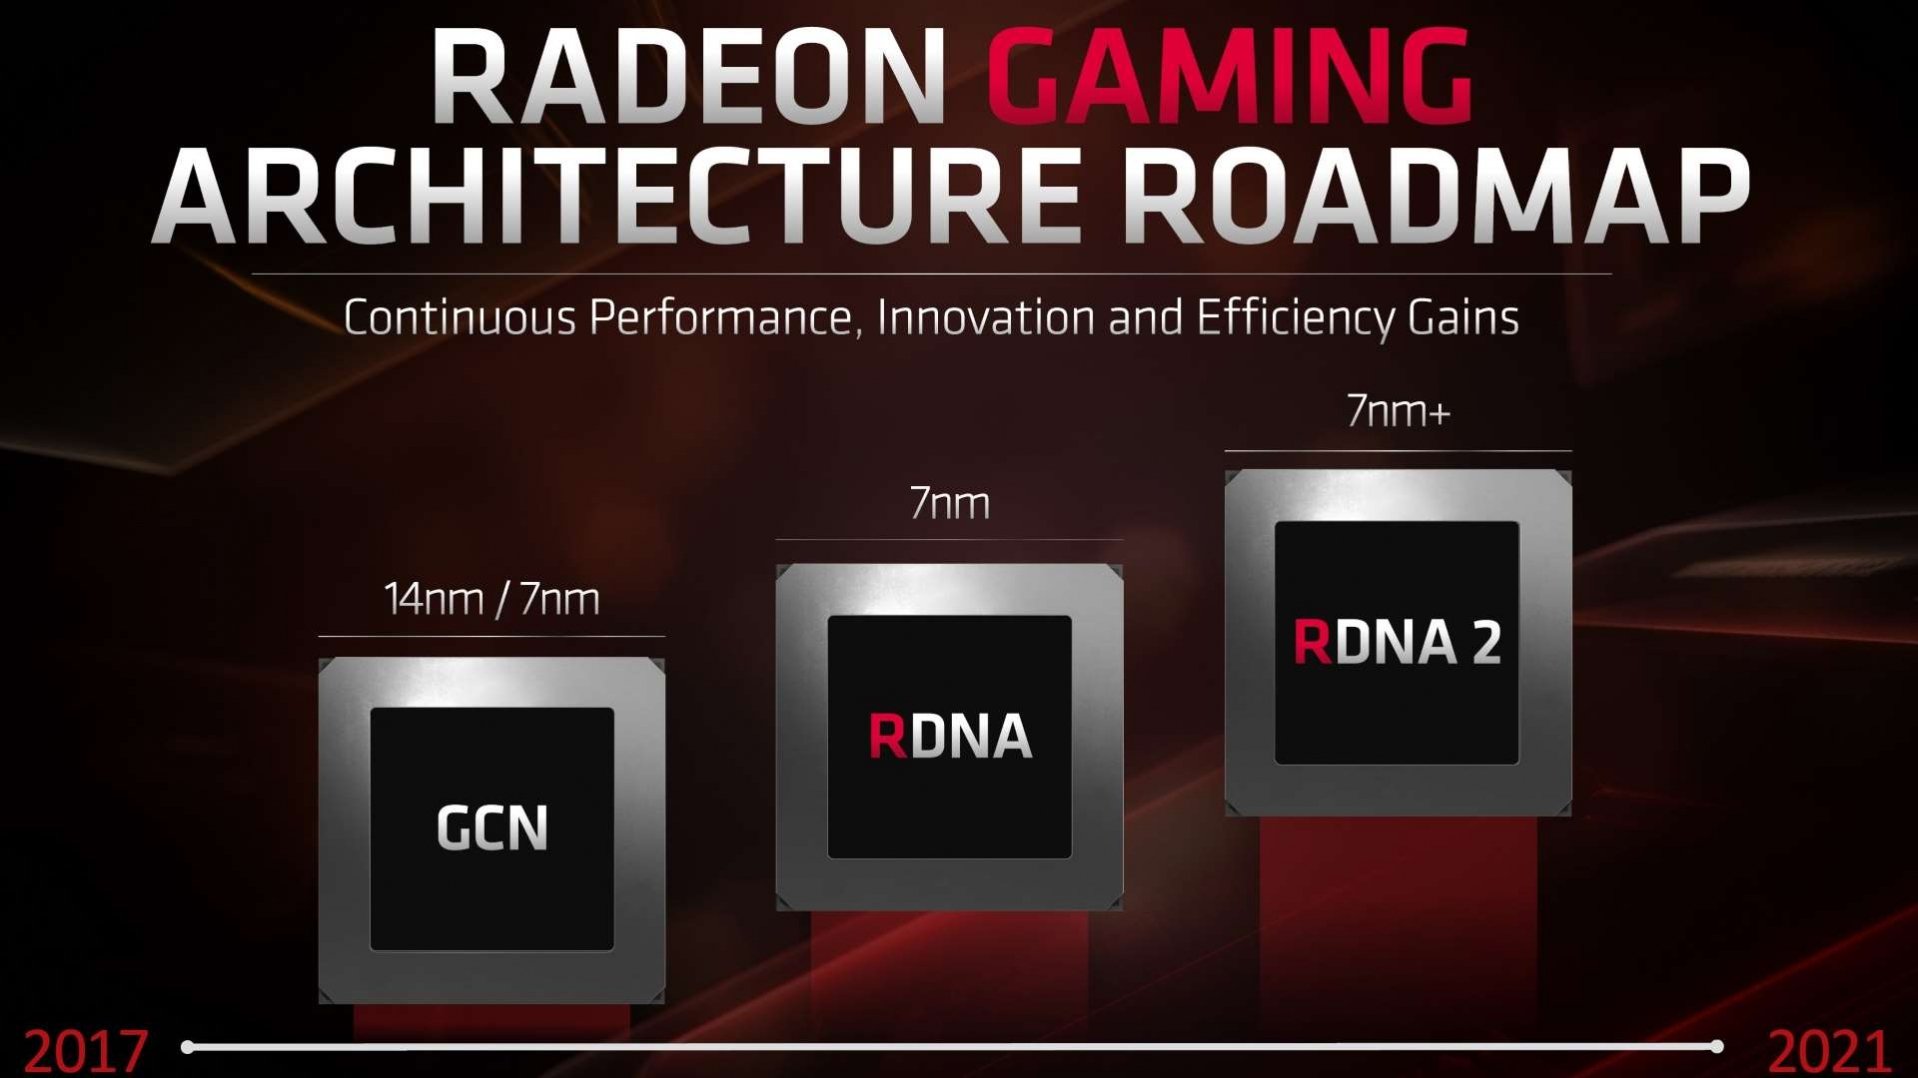 Amd To Refresh Existing Navi Lineup And Launch Next Gen Rdna In 2020 Videocardz Com